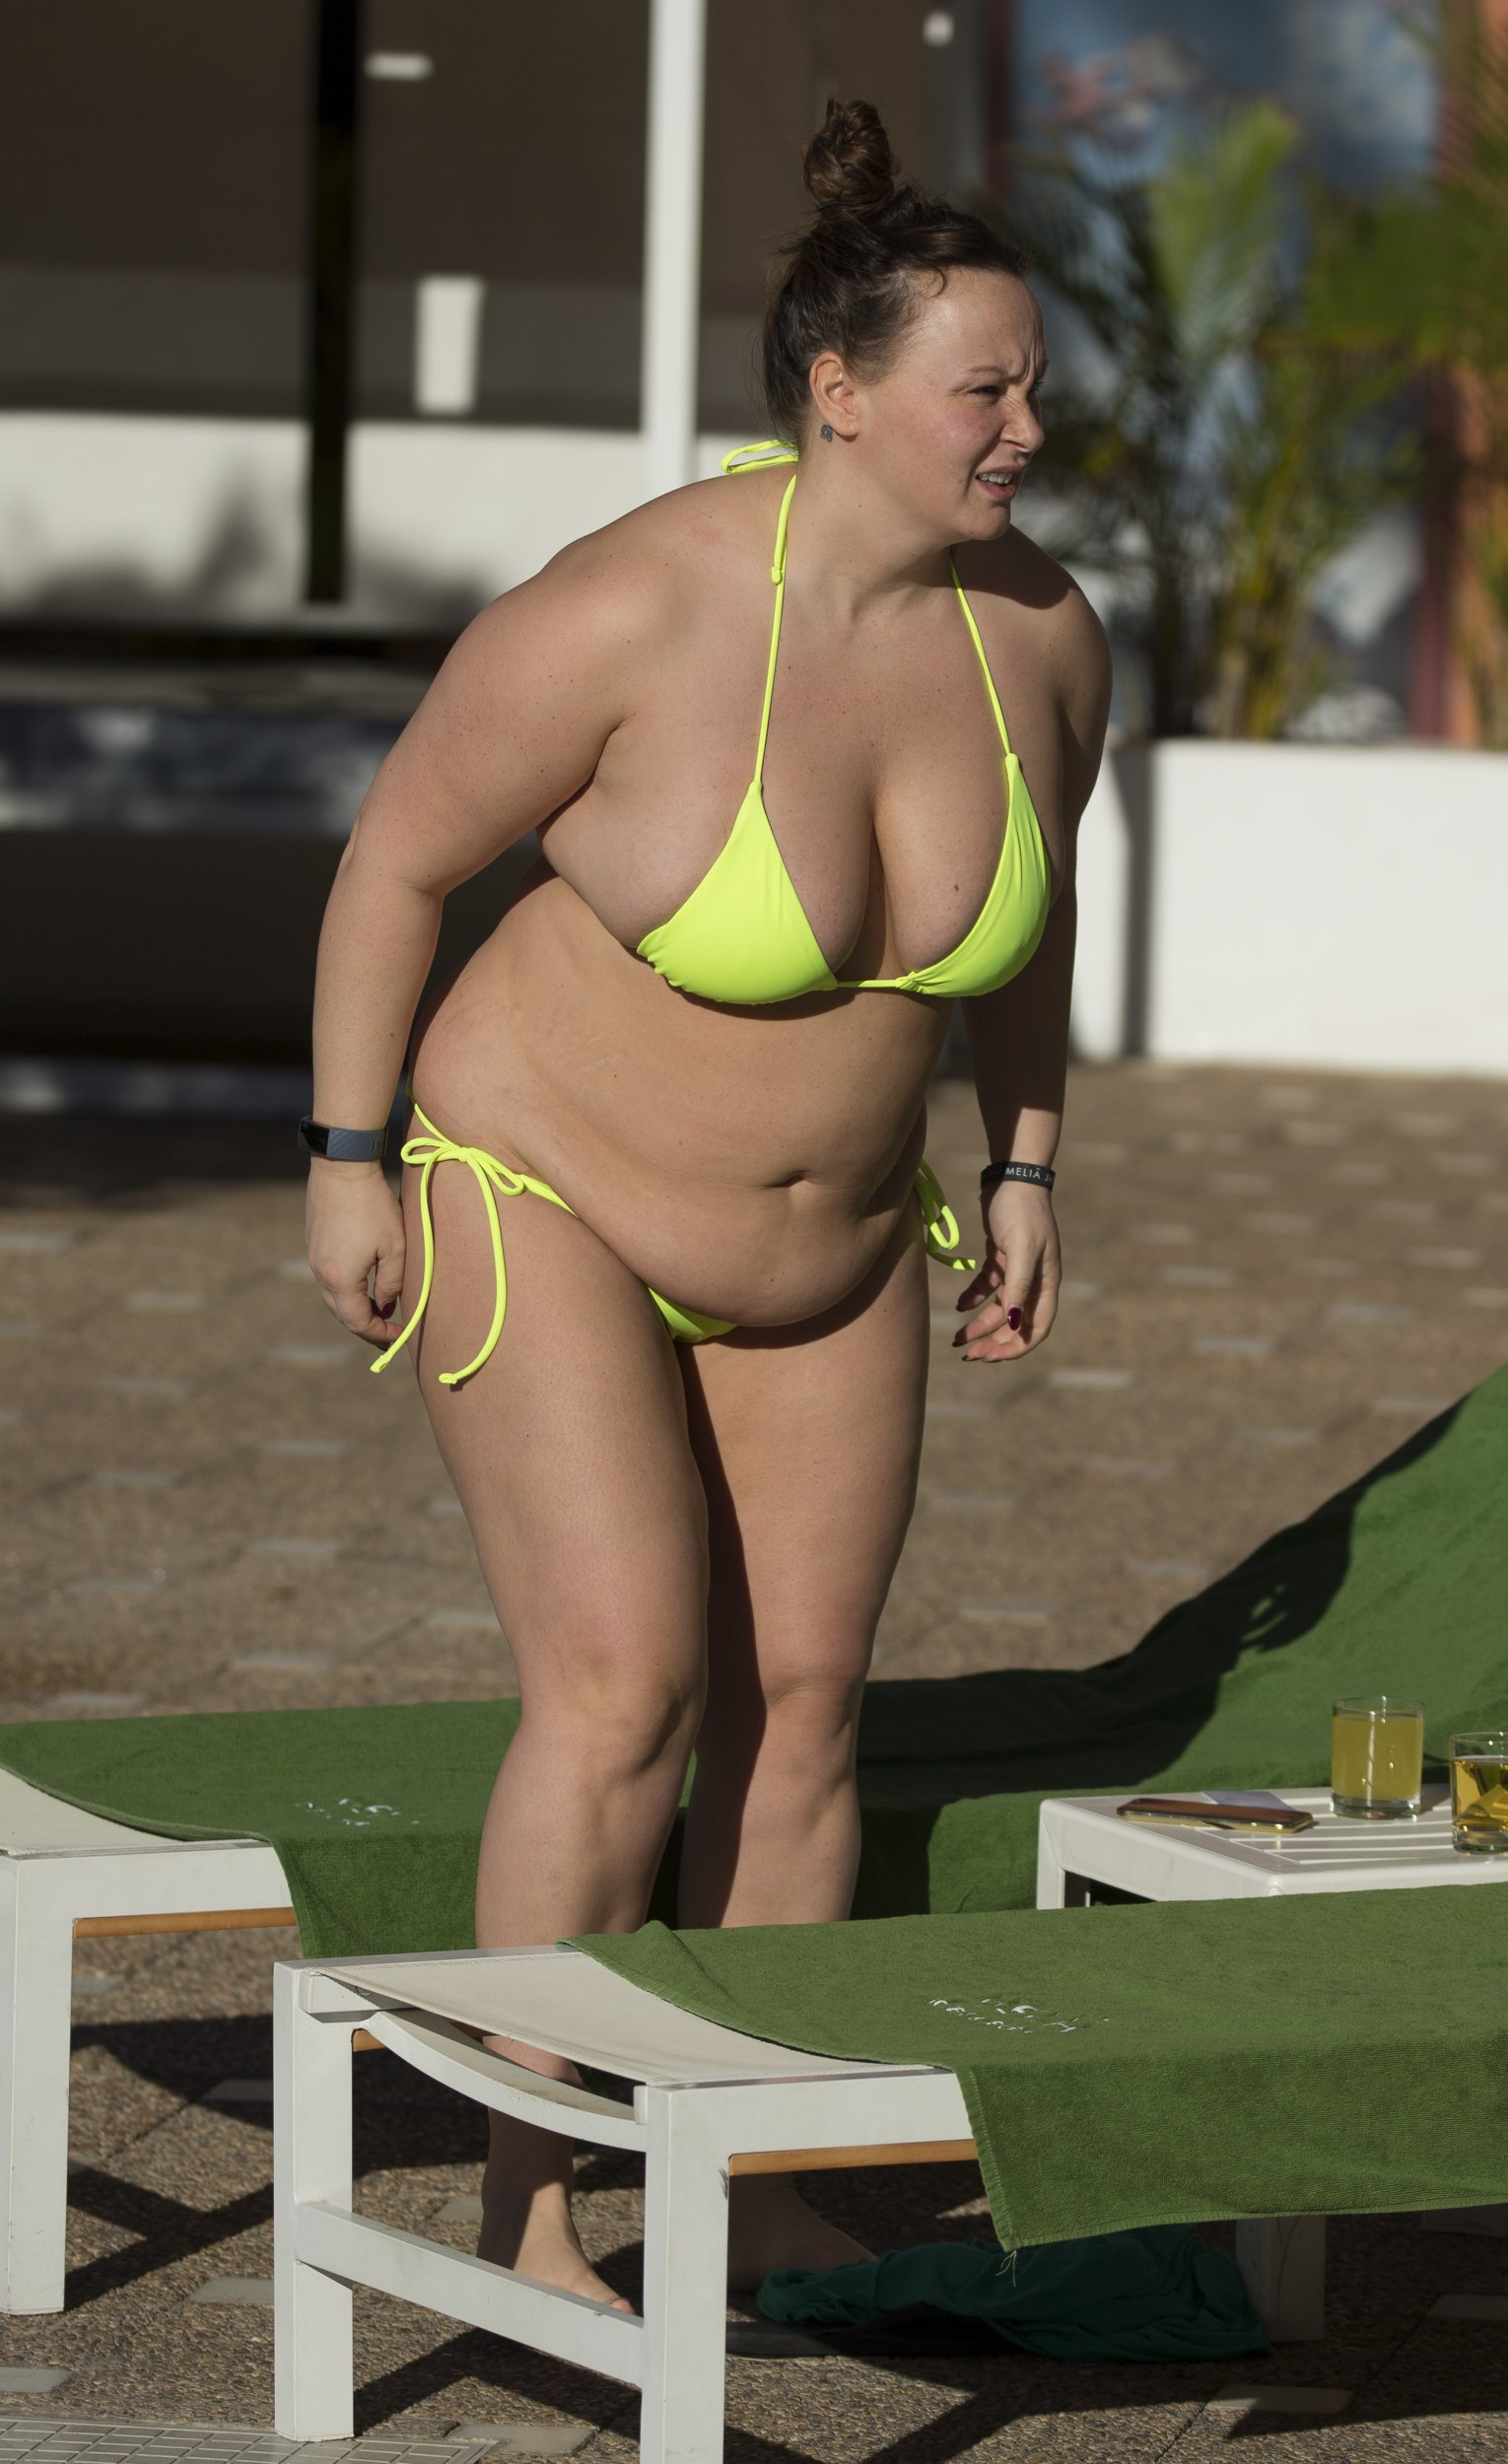 EXCLUSIVE: * No Web Till 12.30PM 8th Jan 2019 * * Online Set Fee After Embargo 300 GBP * * UK Mags Min Set Fee 750 GBP - 1000 GBP If Used on Cover * * UK Papers 250 GBP Per Pic * Chanelle Hayes Laps Up The Sun Whilst on Holiday In Spain. Pictured: Chanelle Hayes Ref: SPL5044247 241118 EXCLUSIVE Picture by: SplashNews.com * Online Set Fee After Embargo 300 GBP * * UK Mags Min Set Fee 750 GBP - 1000 GBP If Used on Cover * * UK Papers 250 GBP Per Pic * Splash News and Pictures Los Angeles: 310-821-2666 New York: 212-619-2666 London: 0207 644 7656 Milan: 02 4399 8577 photodesk@splashnews.com World Rights